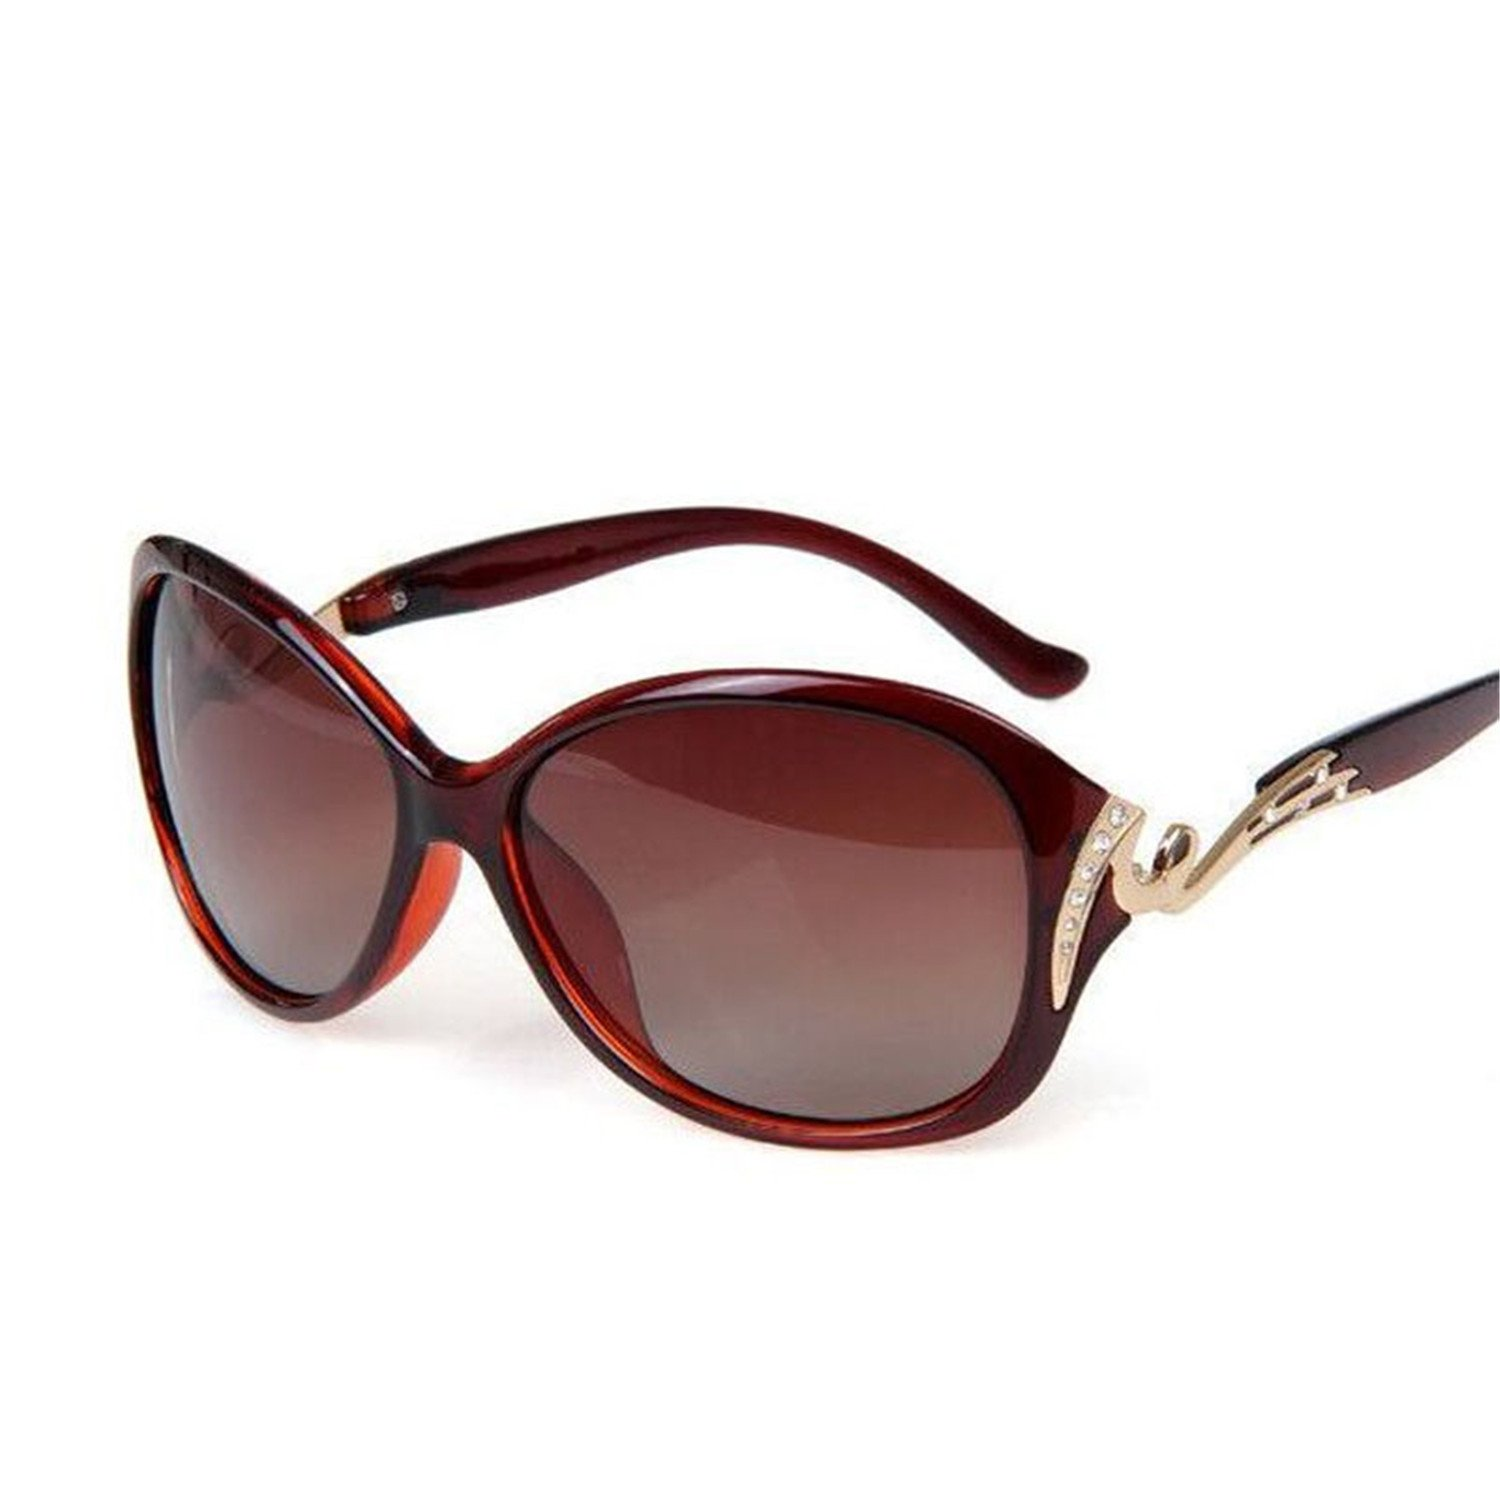 Amazon.com: COOCOl 2018 Fashion Sunglasses Women Luxury Sun Glasses Gafas Polarizadas Feminino M088 Leopard: Clothing